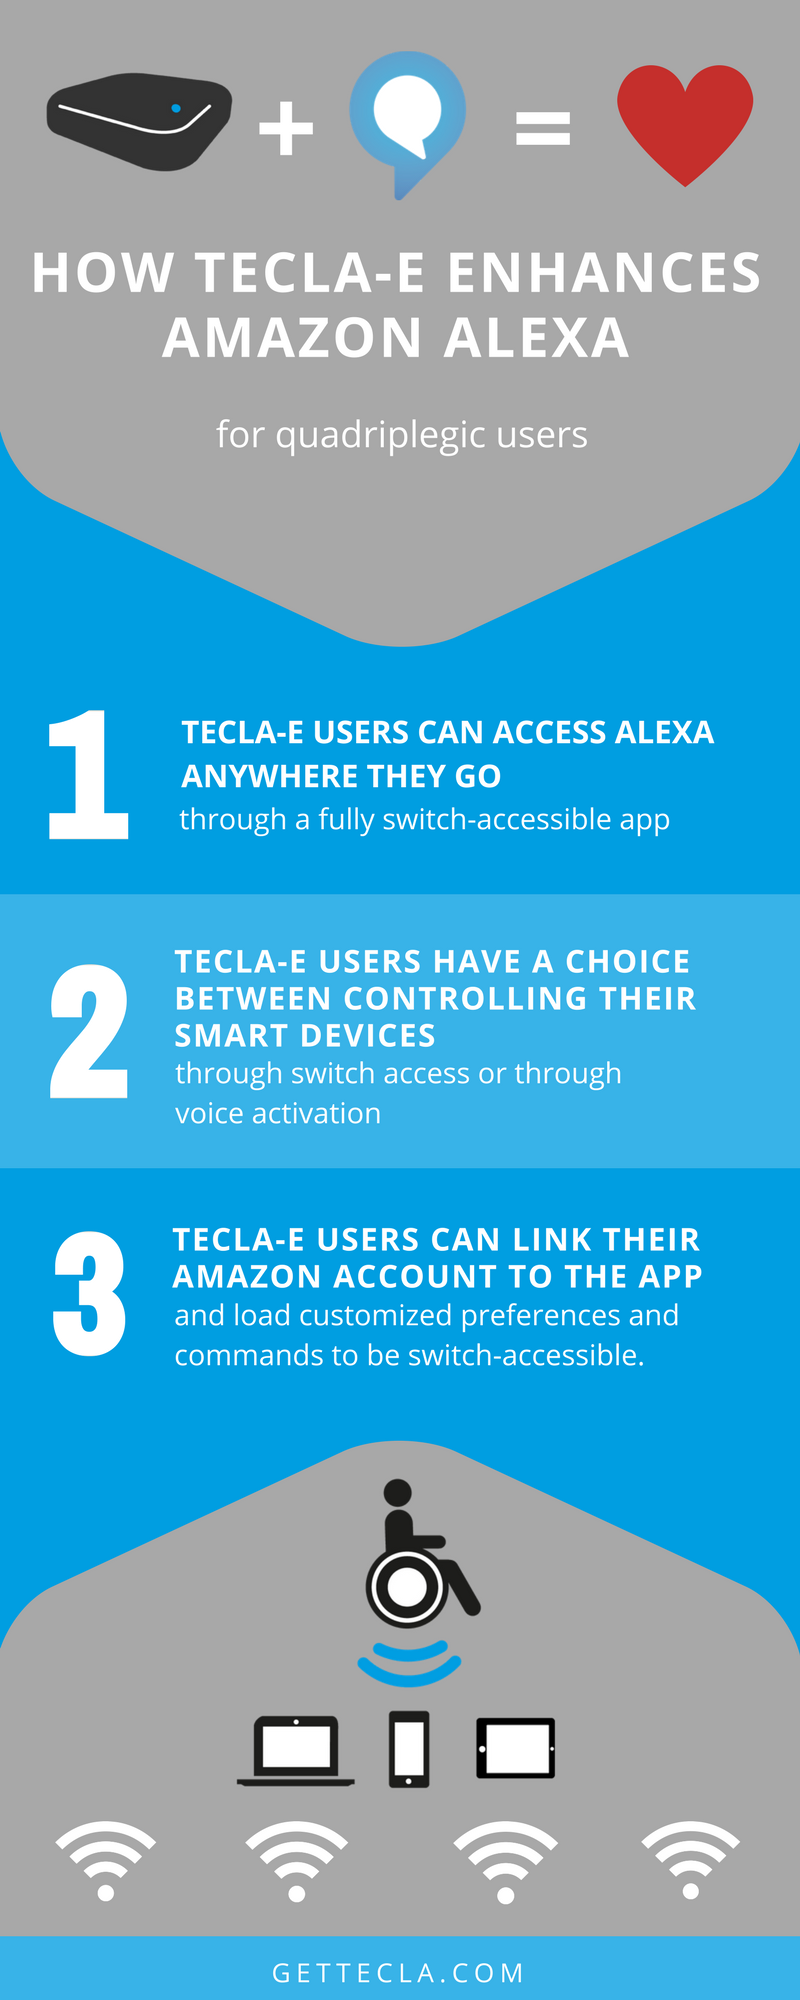 Graphic: how tecla-e enhances Amazon Alexa for quadriplegic users. 1 TECLA-E USERS CAN ACCESS ALEXA ANYWHERE THEY GO THROUGH A FULLY SWITCH-ACCESSIBLE APP, 2 TECLA-E USERS CAN HAVE A CHOICE BETWEEN CONTROLLING THEIR SMART DEVICES THROUGH SWITCH ACCESS OR THROUGH VOICE ACTIVATION, 3 TECLA-E USERS CAN LINK THEIR AMAZON ACCOUNT TO THE APP AND LOAD CUSTOMIZED PREFERENCES AND COMMANDS TO BE SWITCH-ACCESSIBLE.